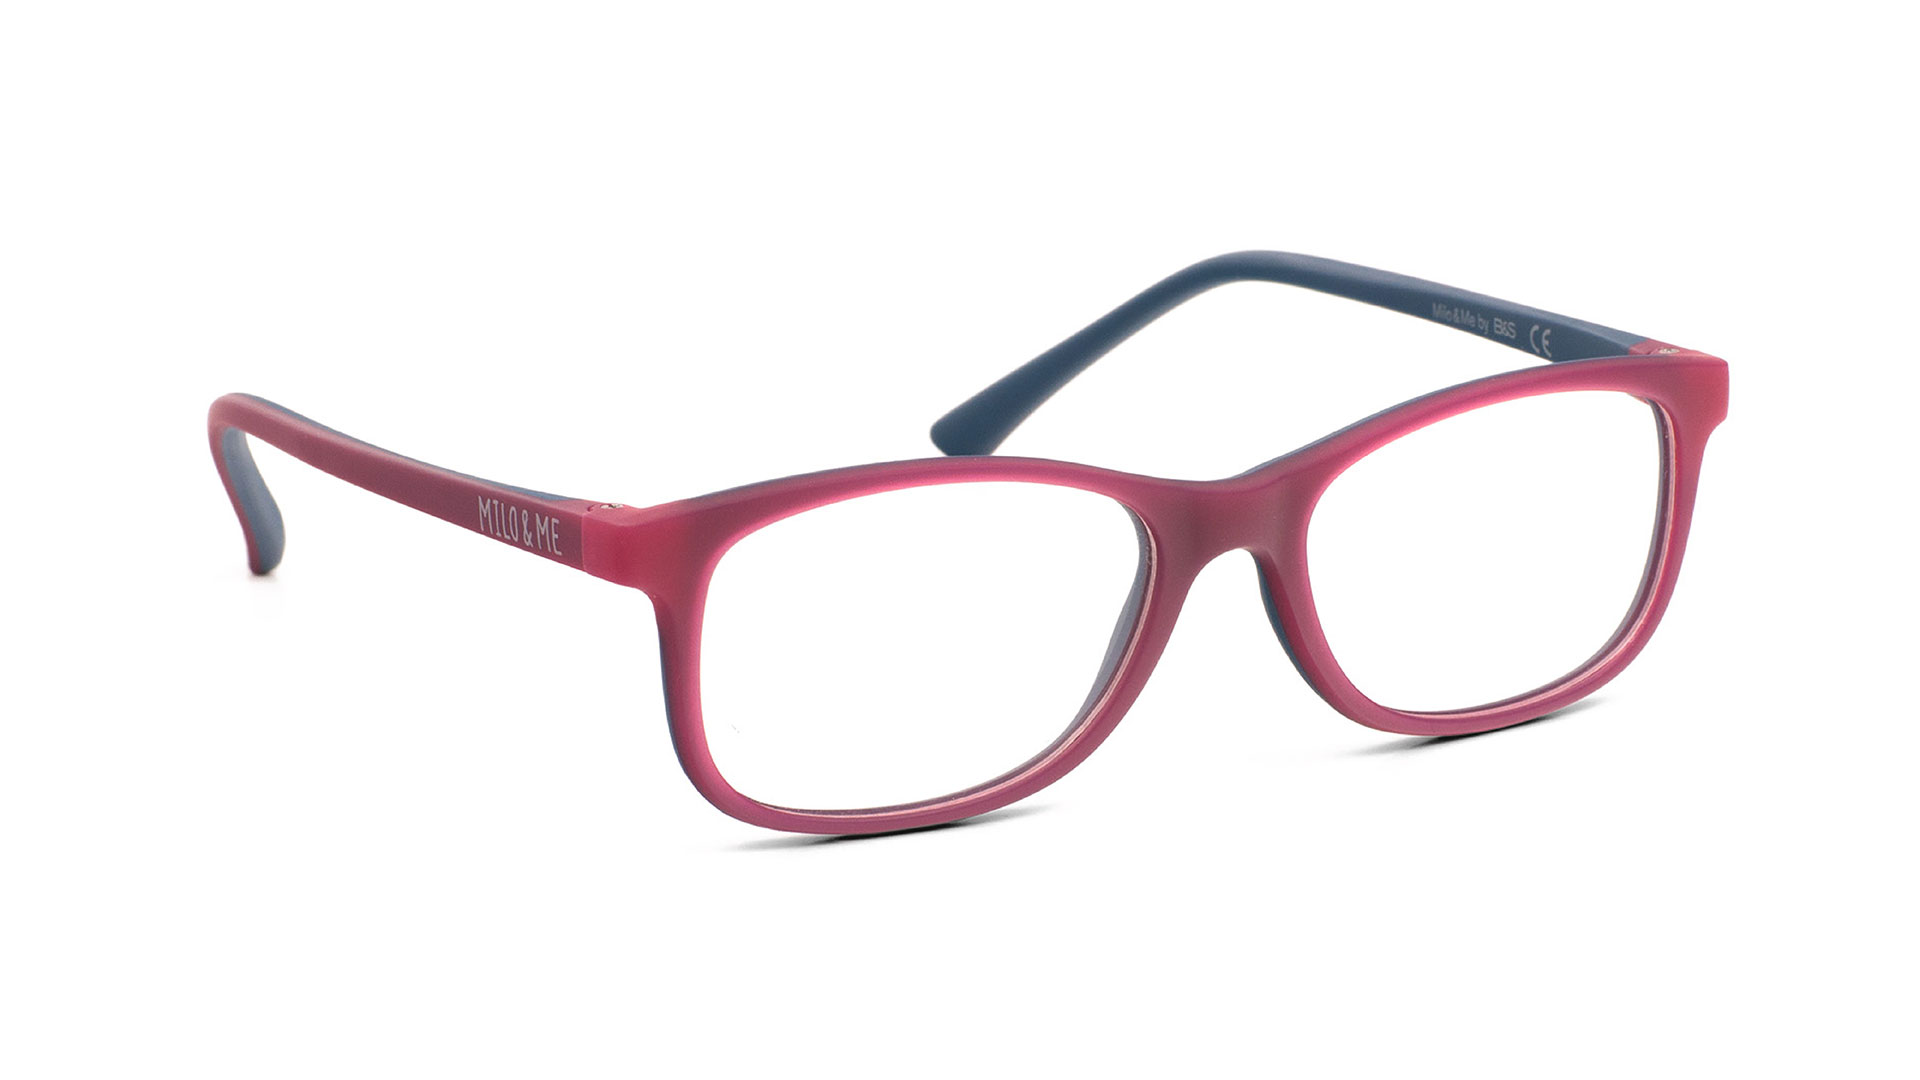 Blackberry Dark Blue H85040-25 - Milo & Me Eyewear - Optimum RX Lens Specialists